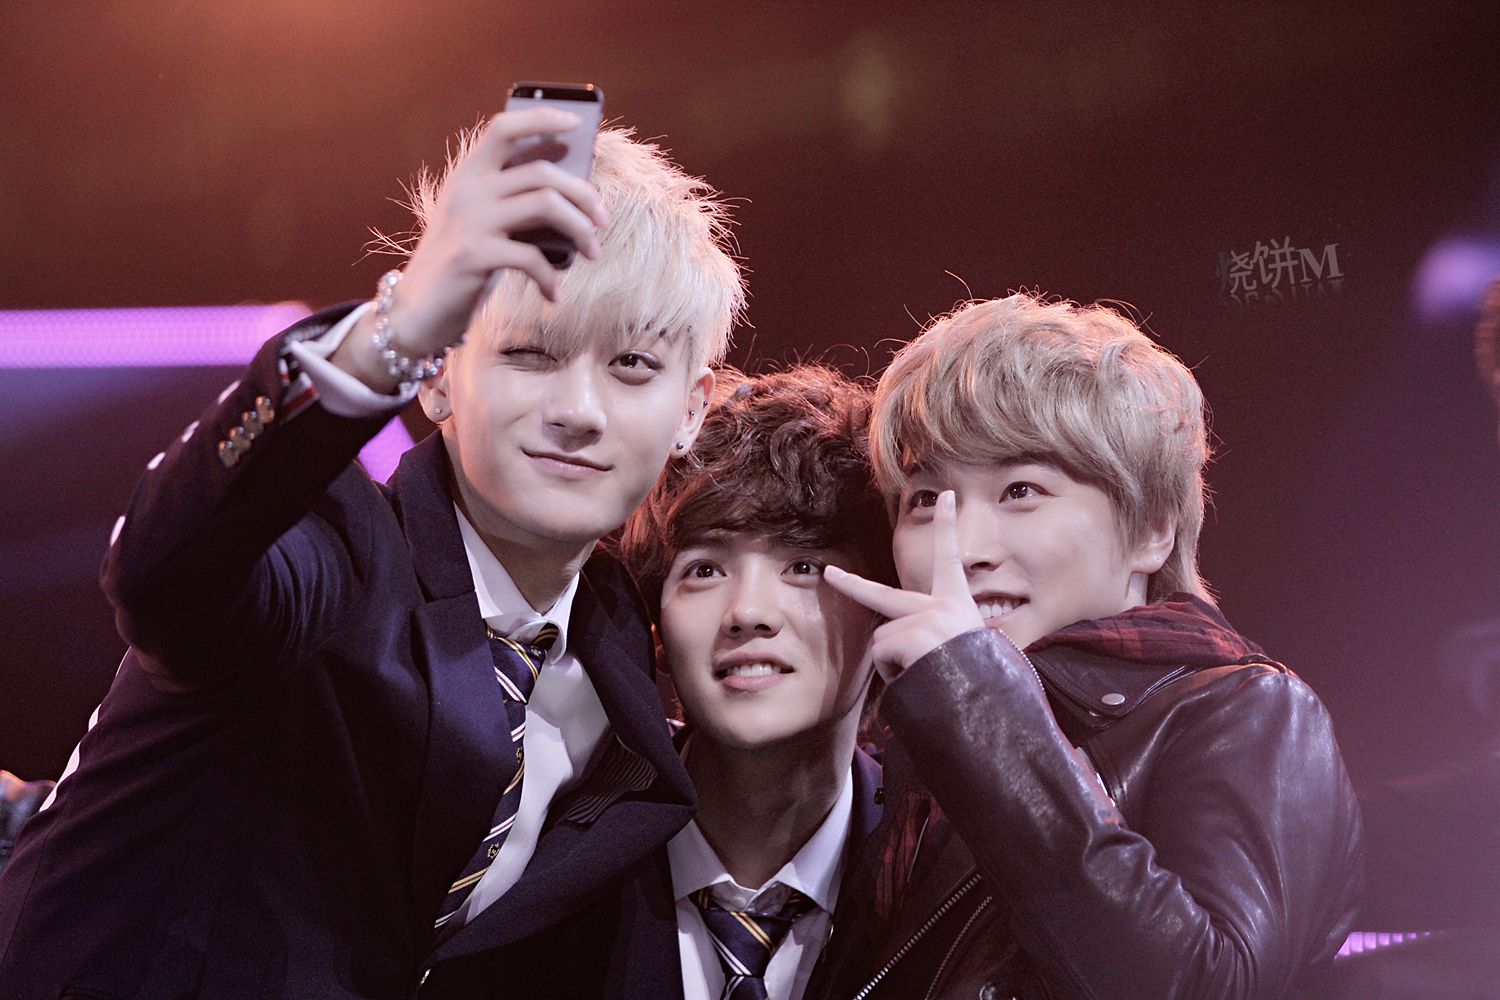 Tao, Luhan and Sungmin - Dragon TV New Year's Eve Show